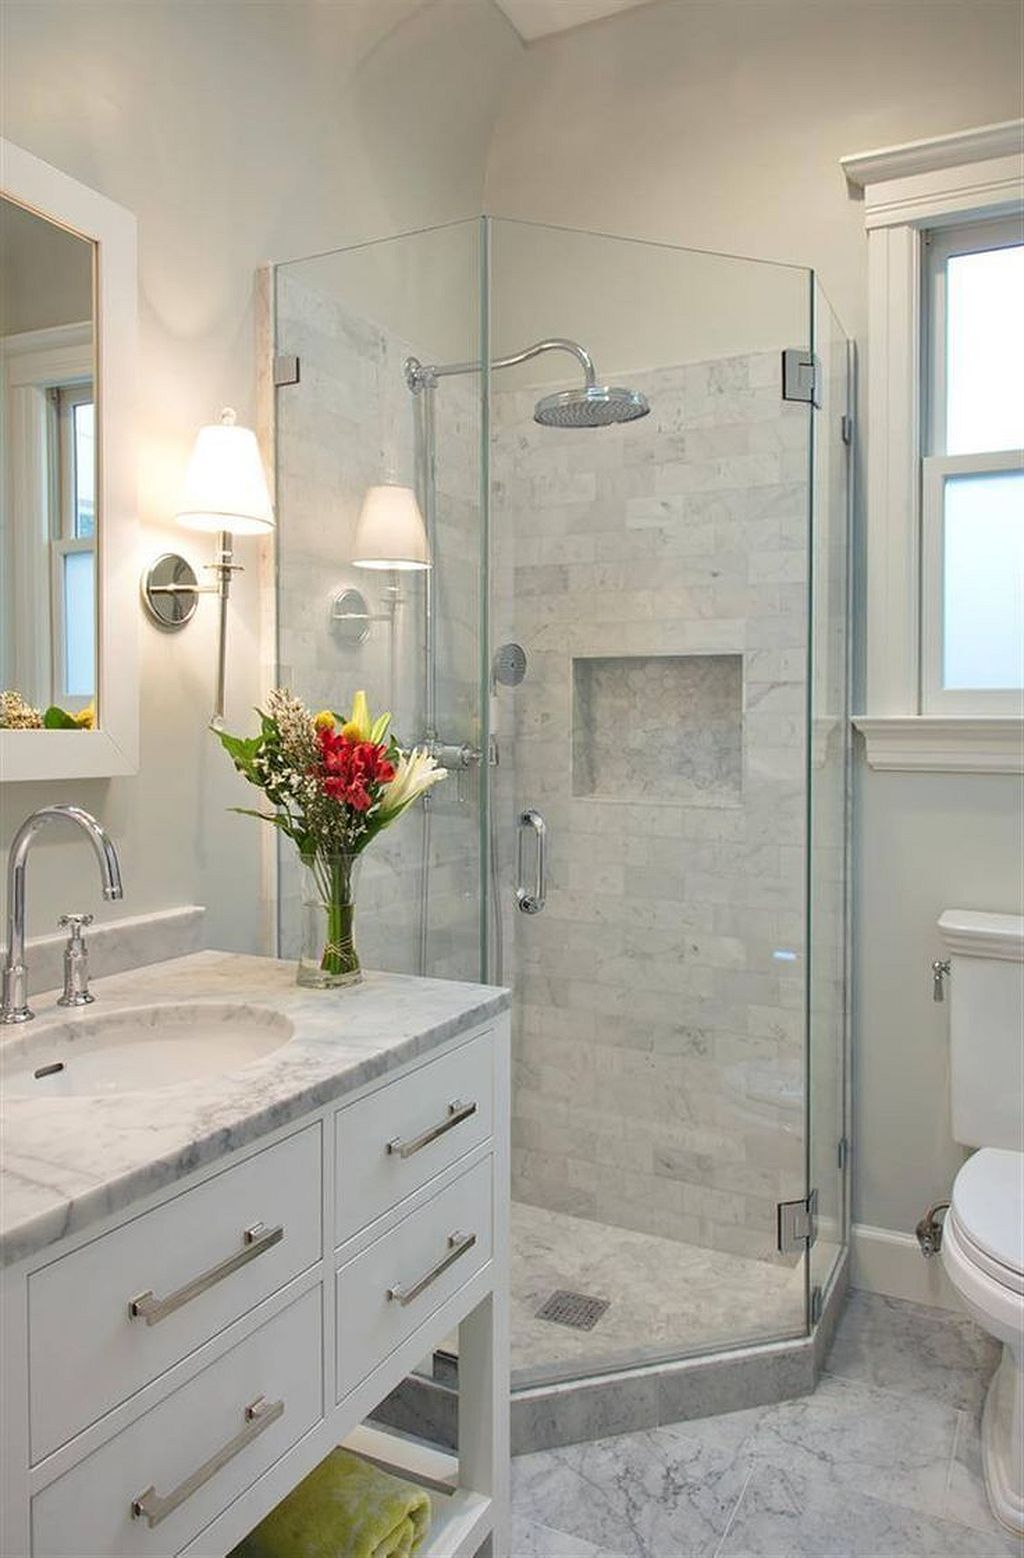 Insanely Cool Small Master Bathroom Remodel Ideas On A Budget 35